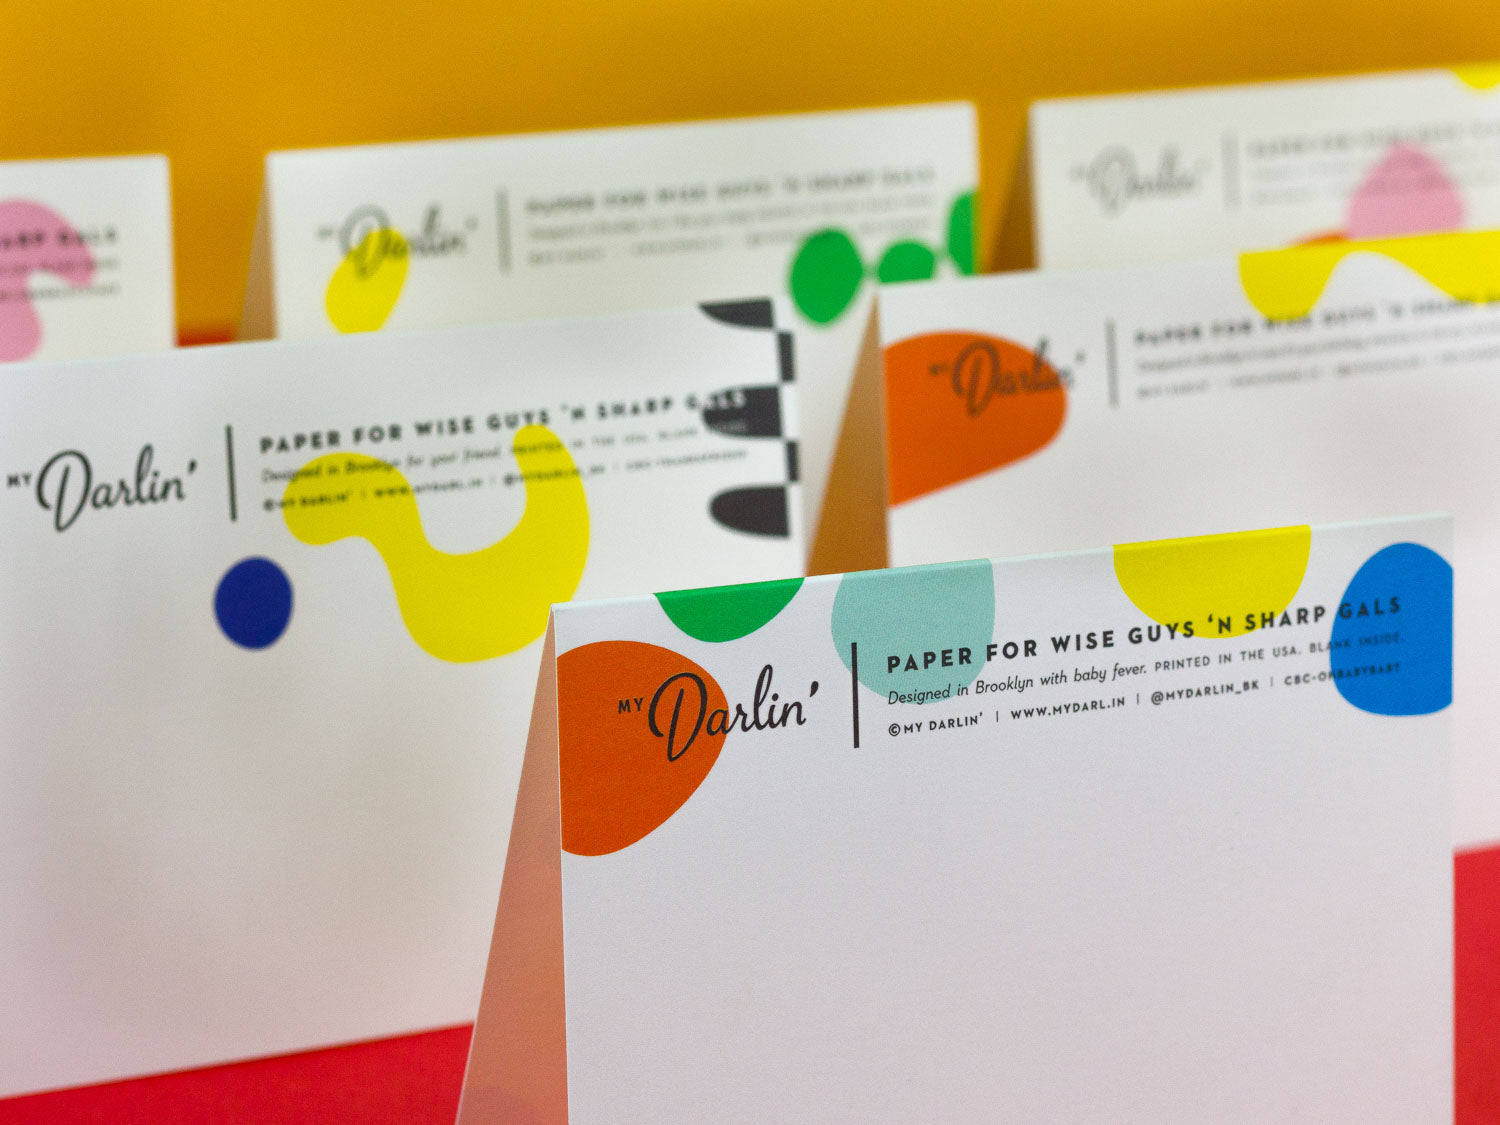 Oh Baby Baby! New baby congrats card with colorful bouncing dots. Back of the card. By My Darlin' @mydarlin_bk